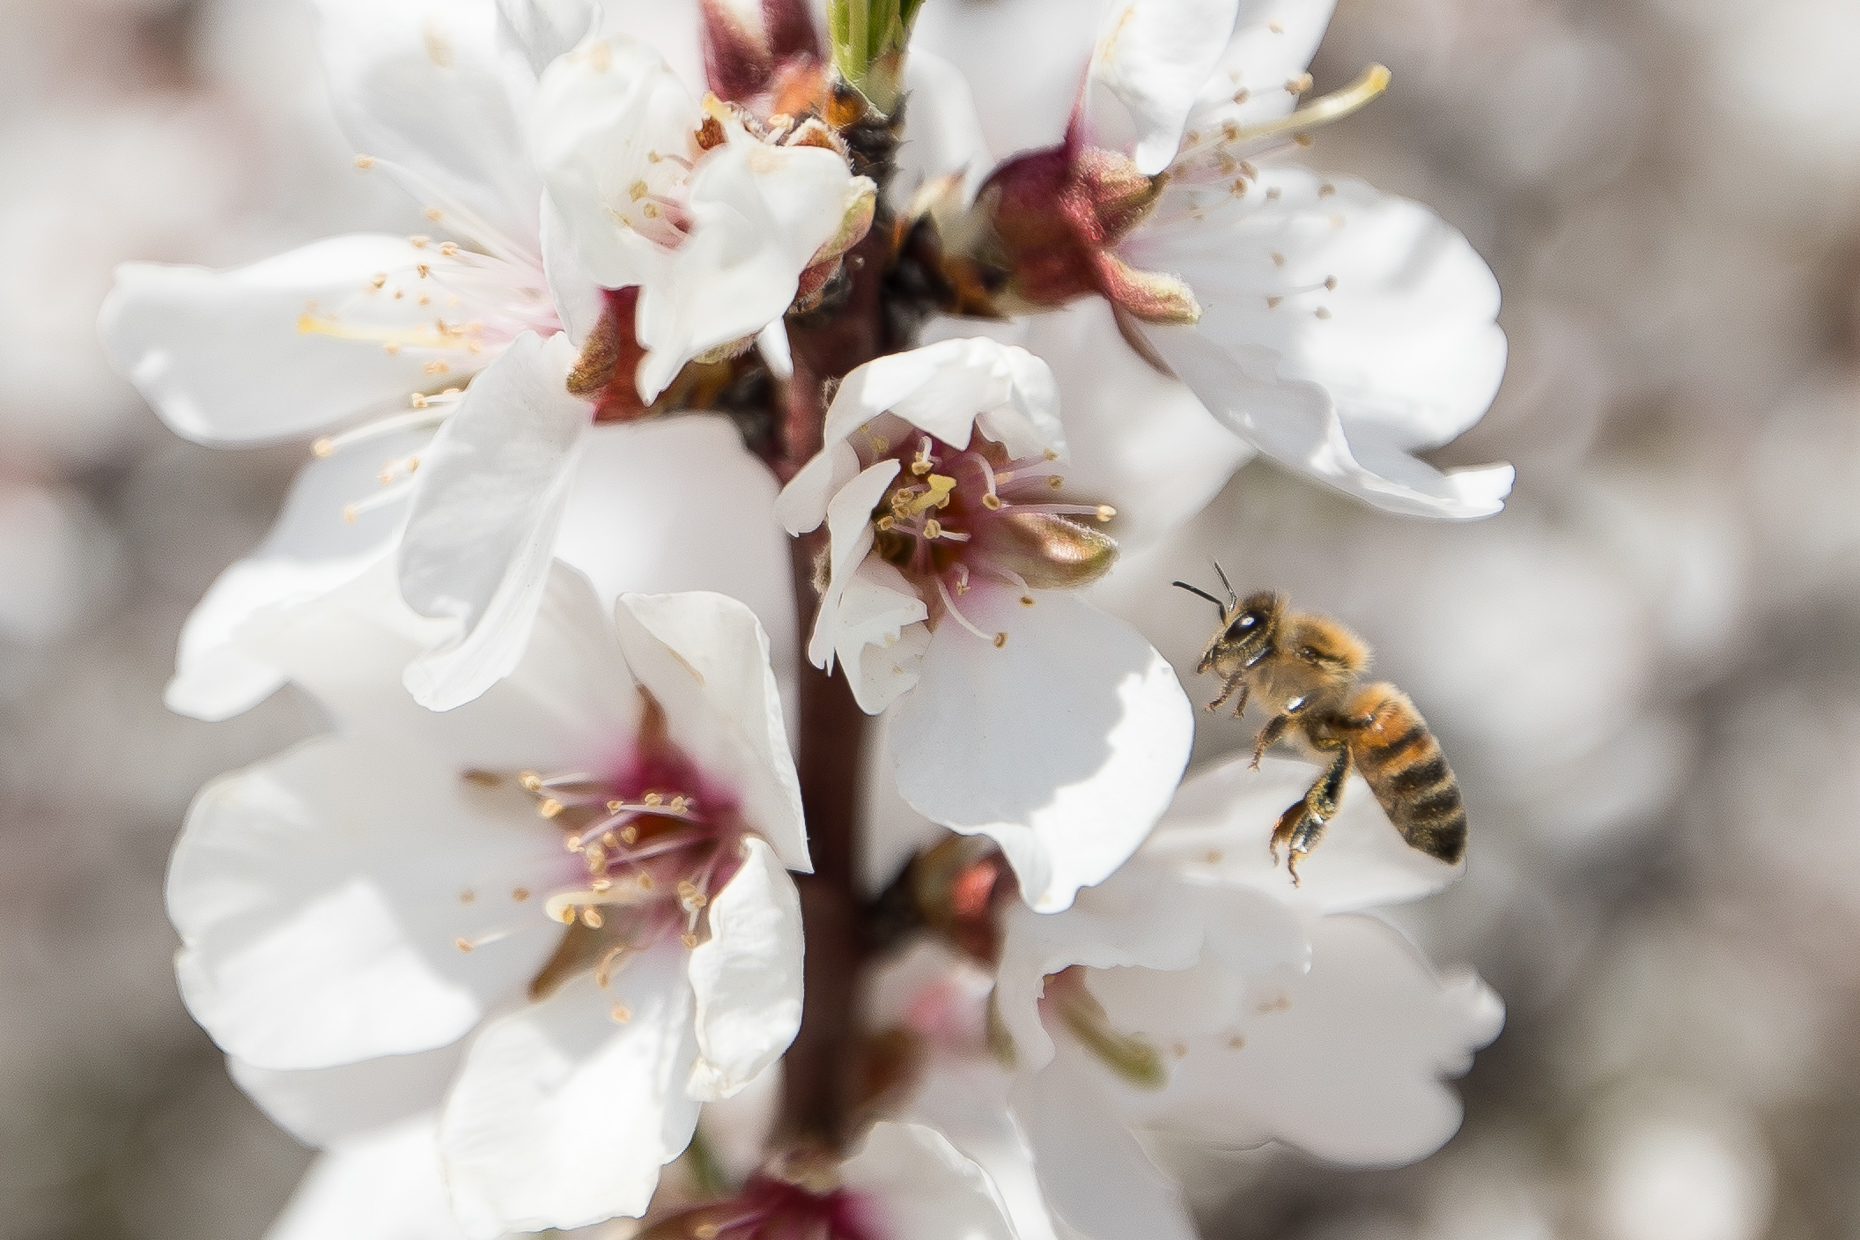 Haagen-Dazs-honey-bees-project-0556